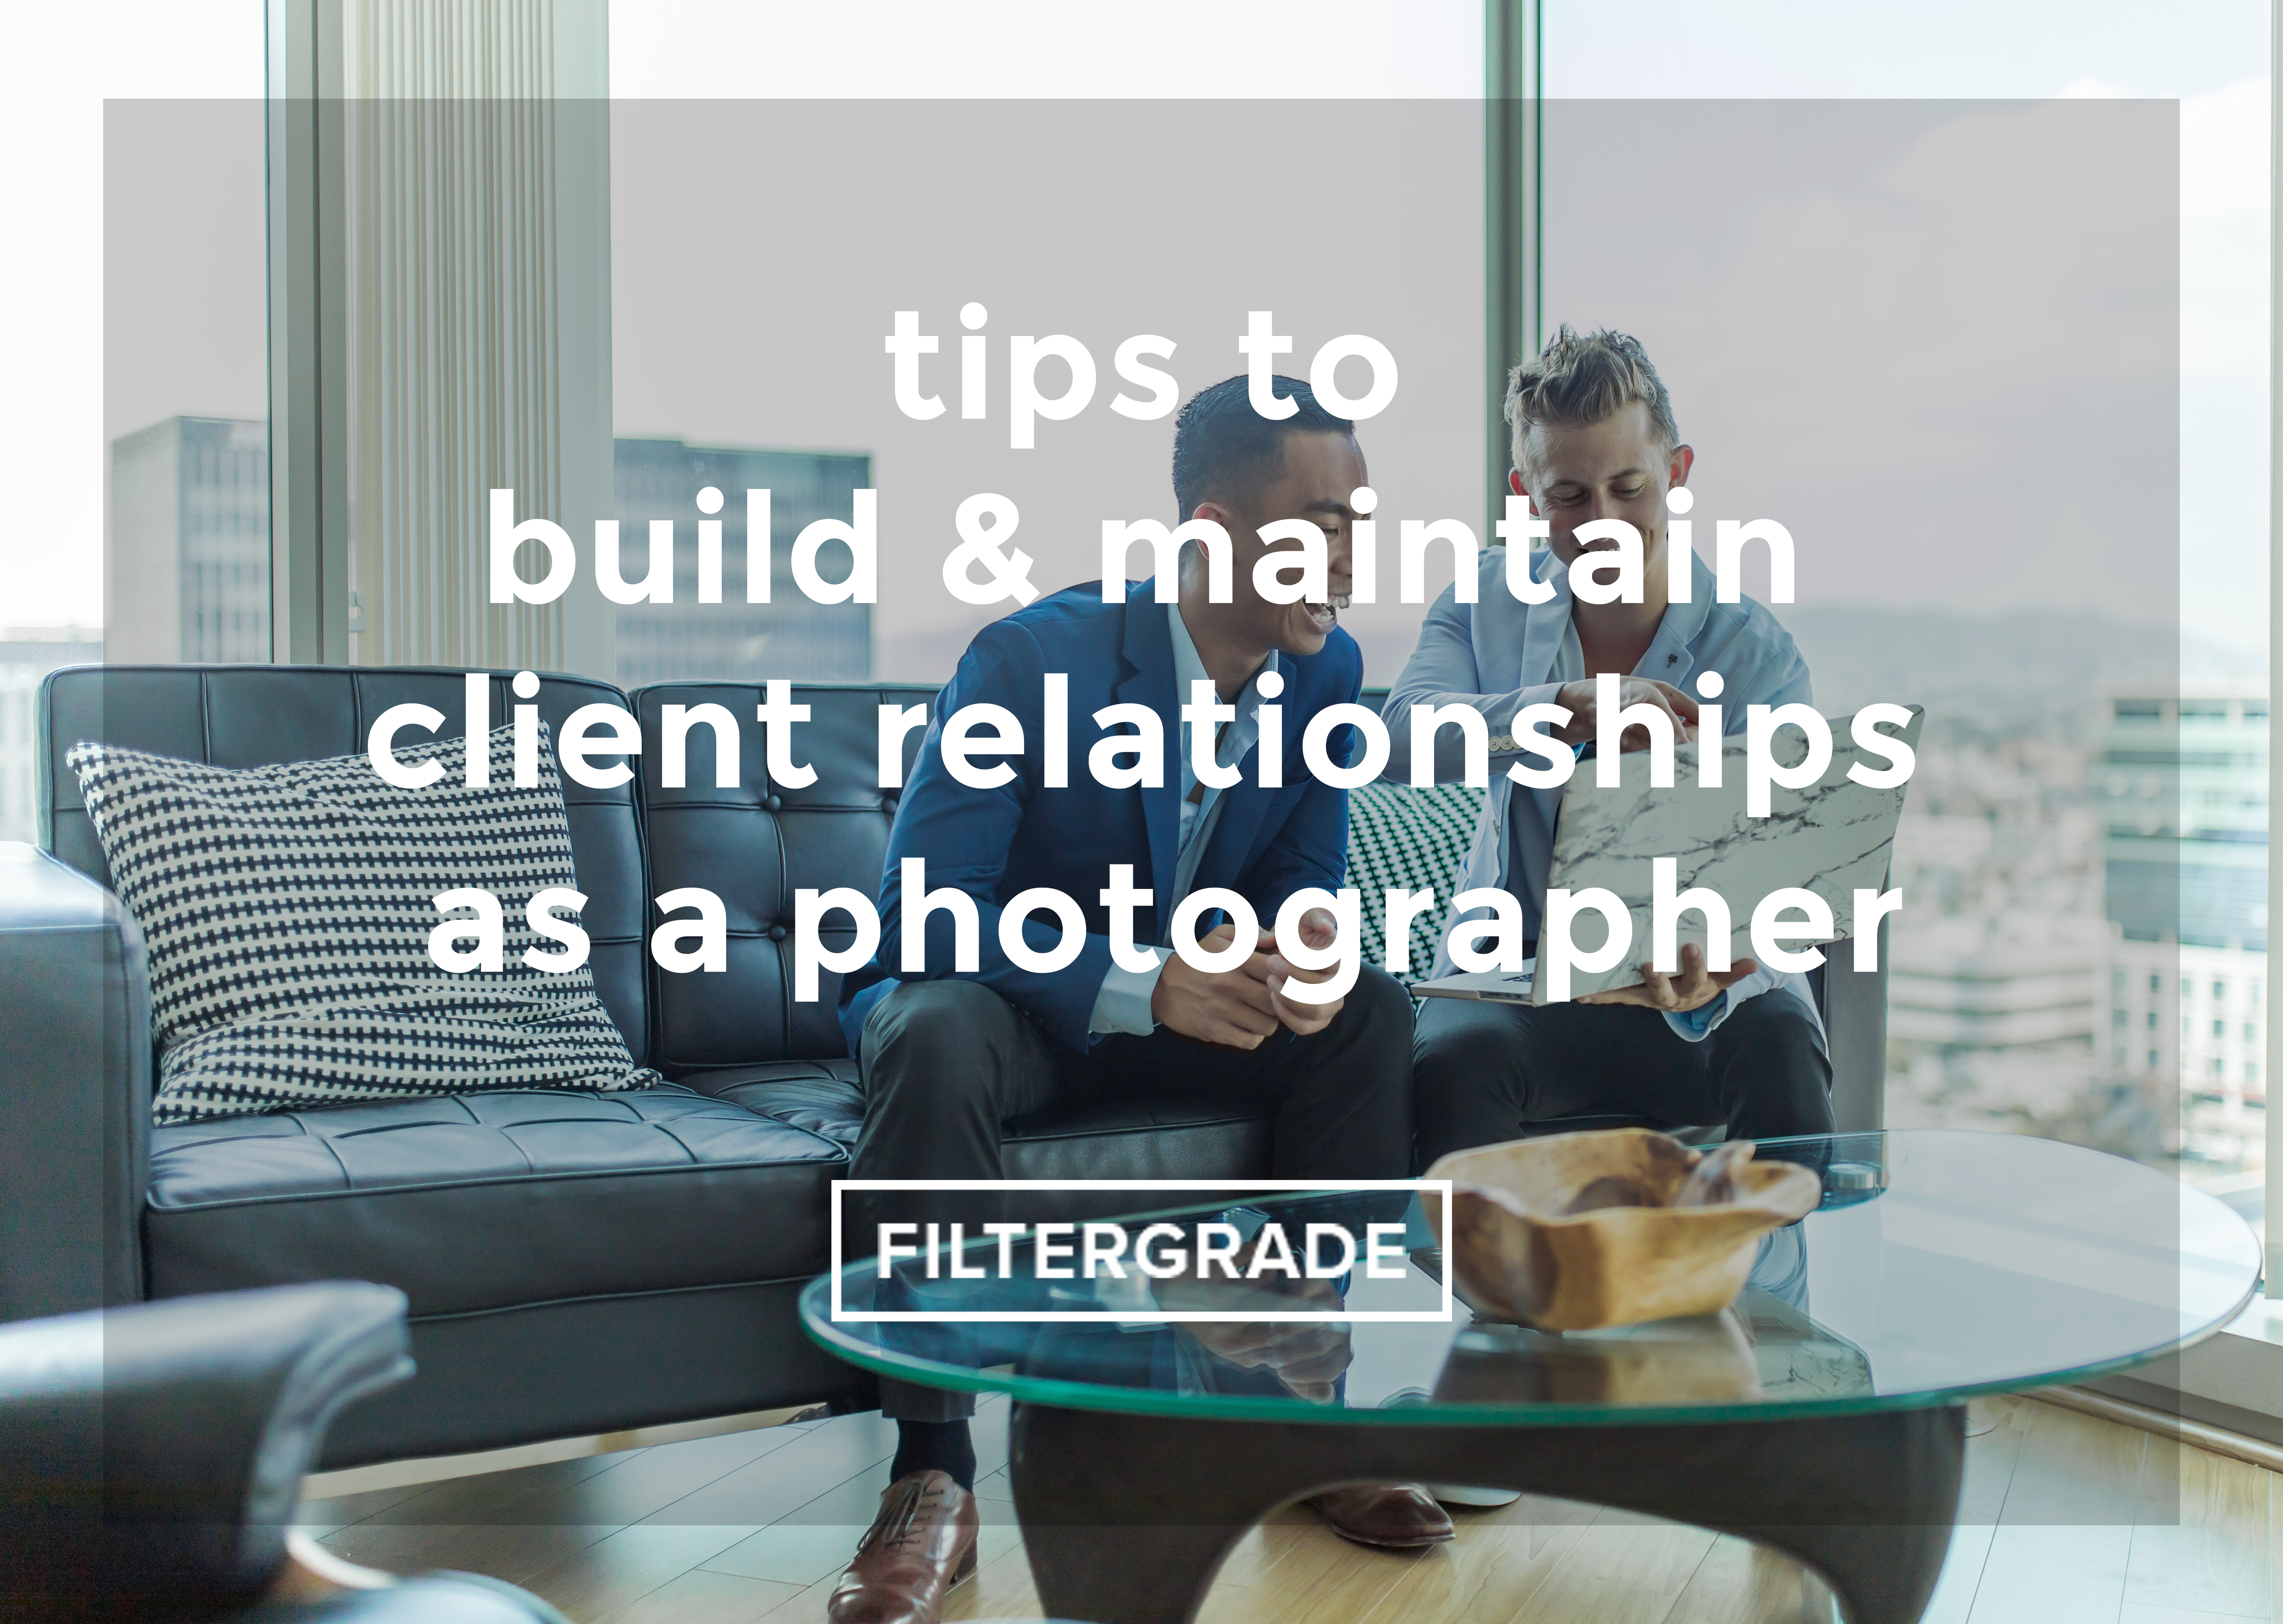 tips to build and maintain client relationships as a photographer - FilterGrade